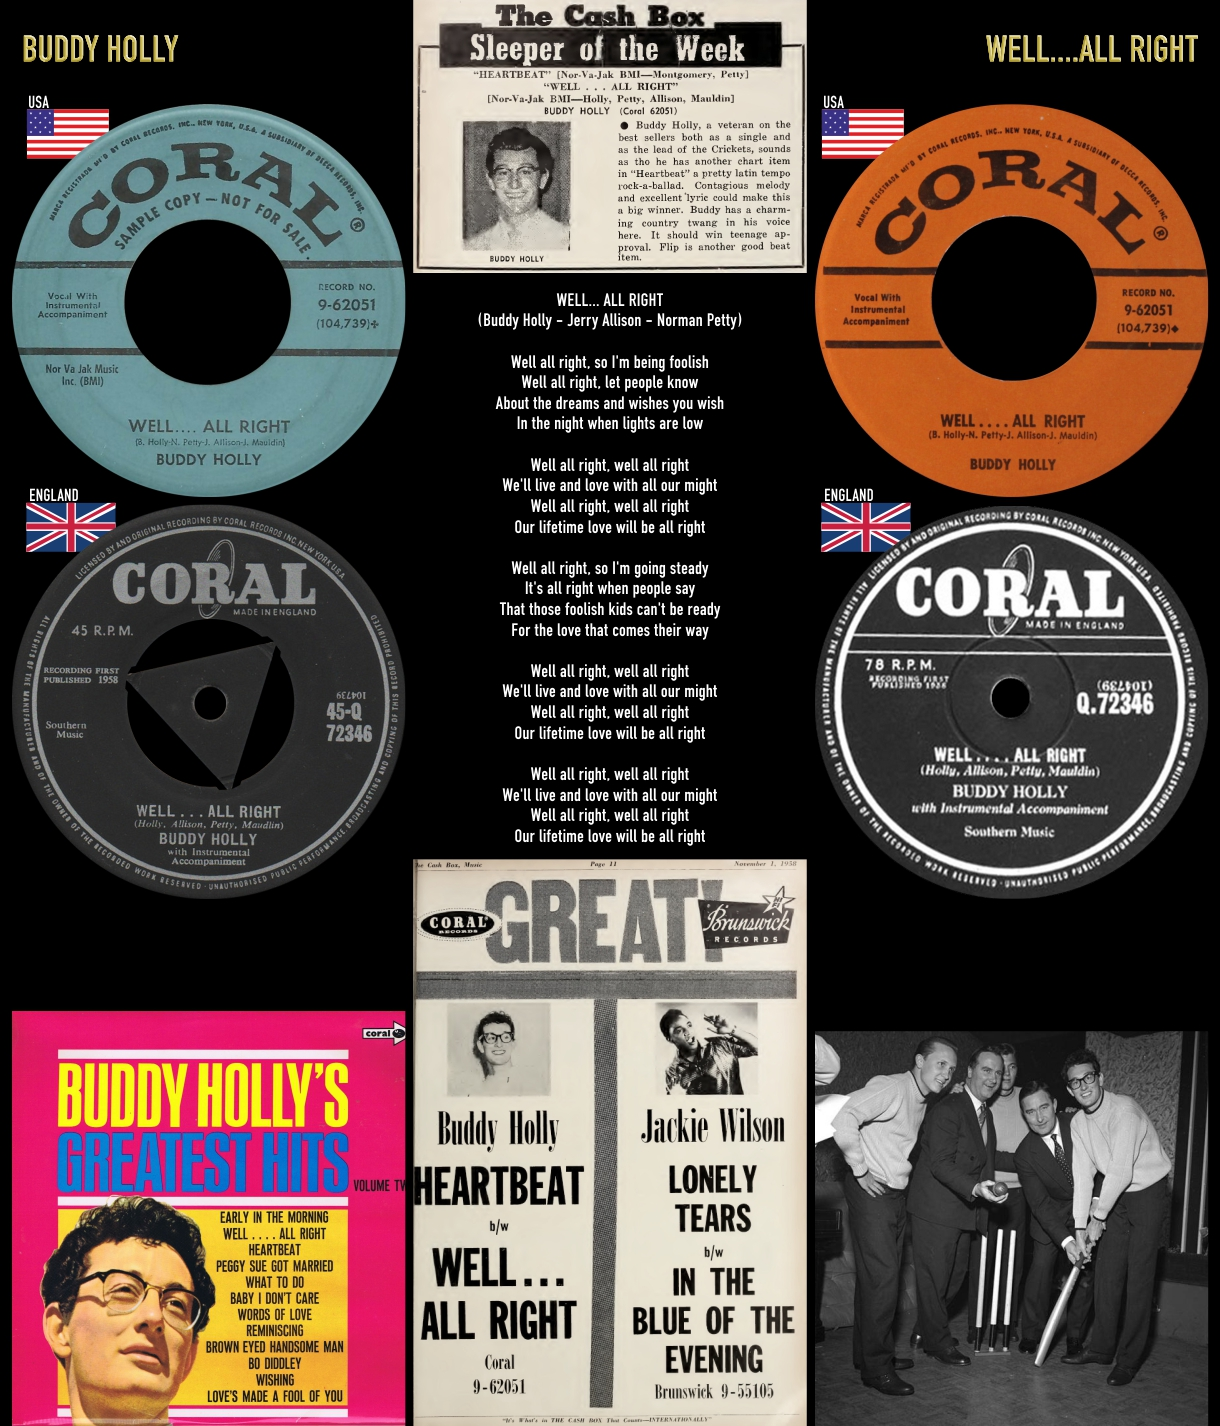 580127_Buddy Holly_Well All Right_01